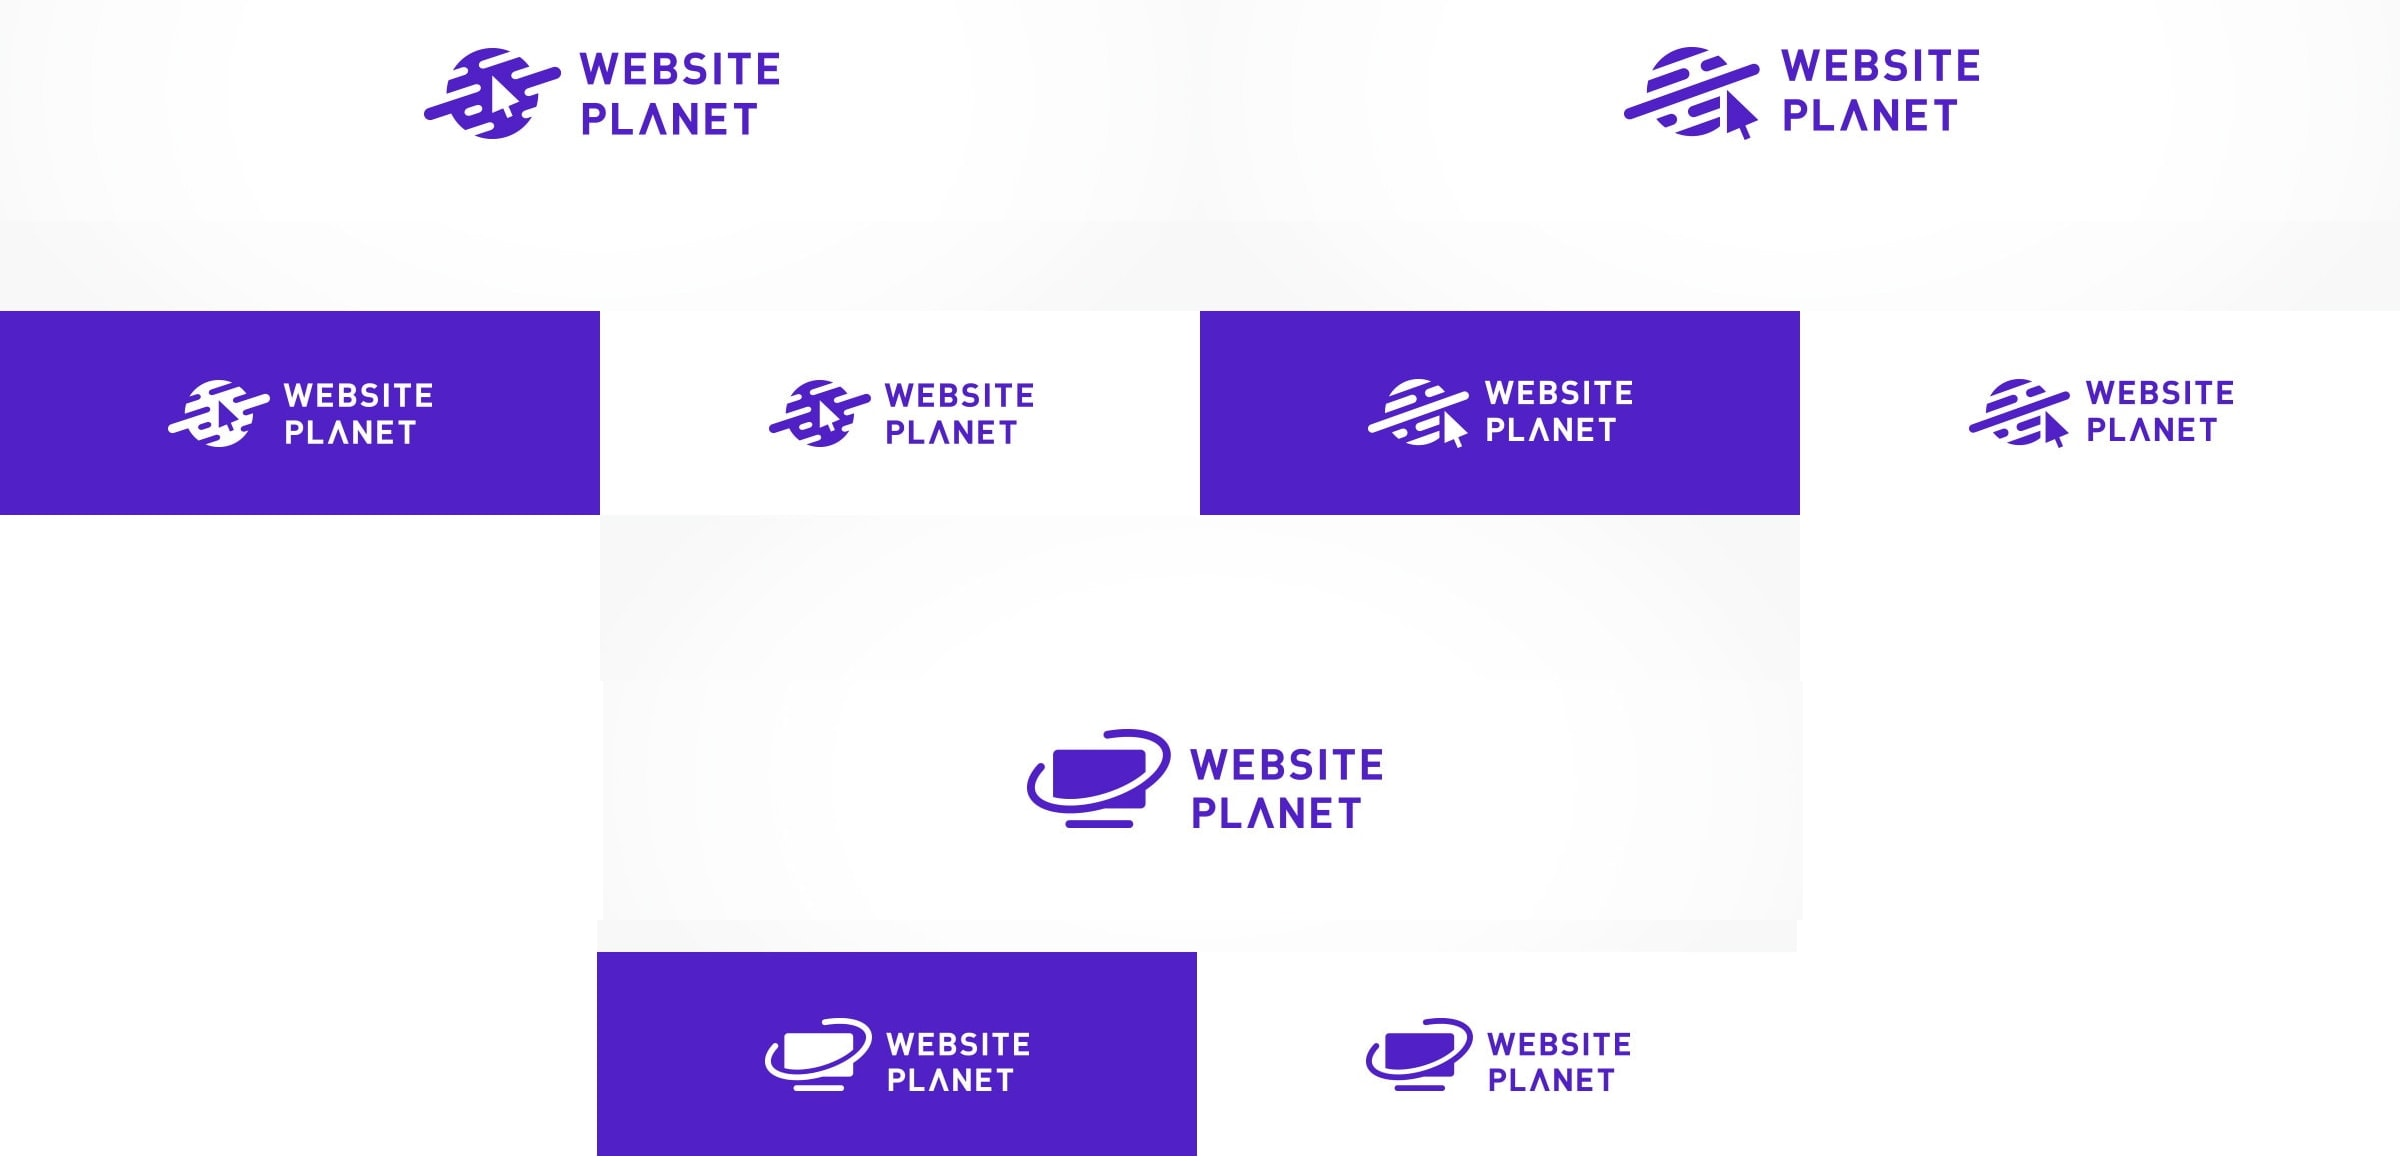 Website Planet logos from DesignCrowd